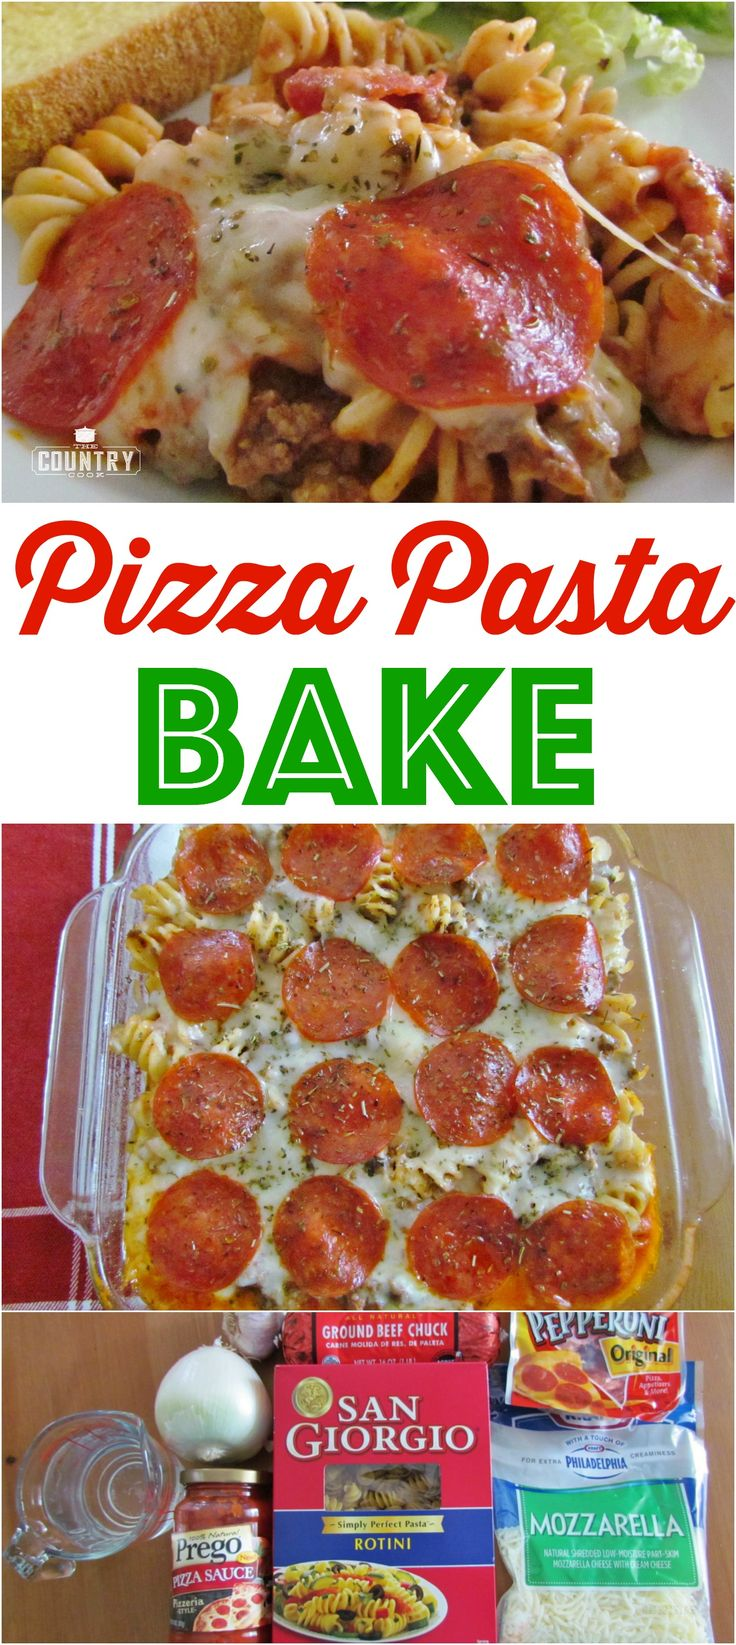 Pizza Pasta Bake recipe from The Country Cook